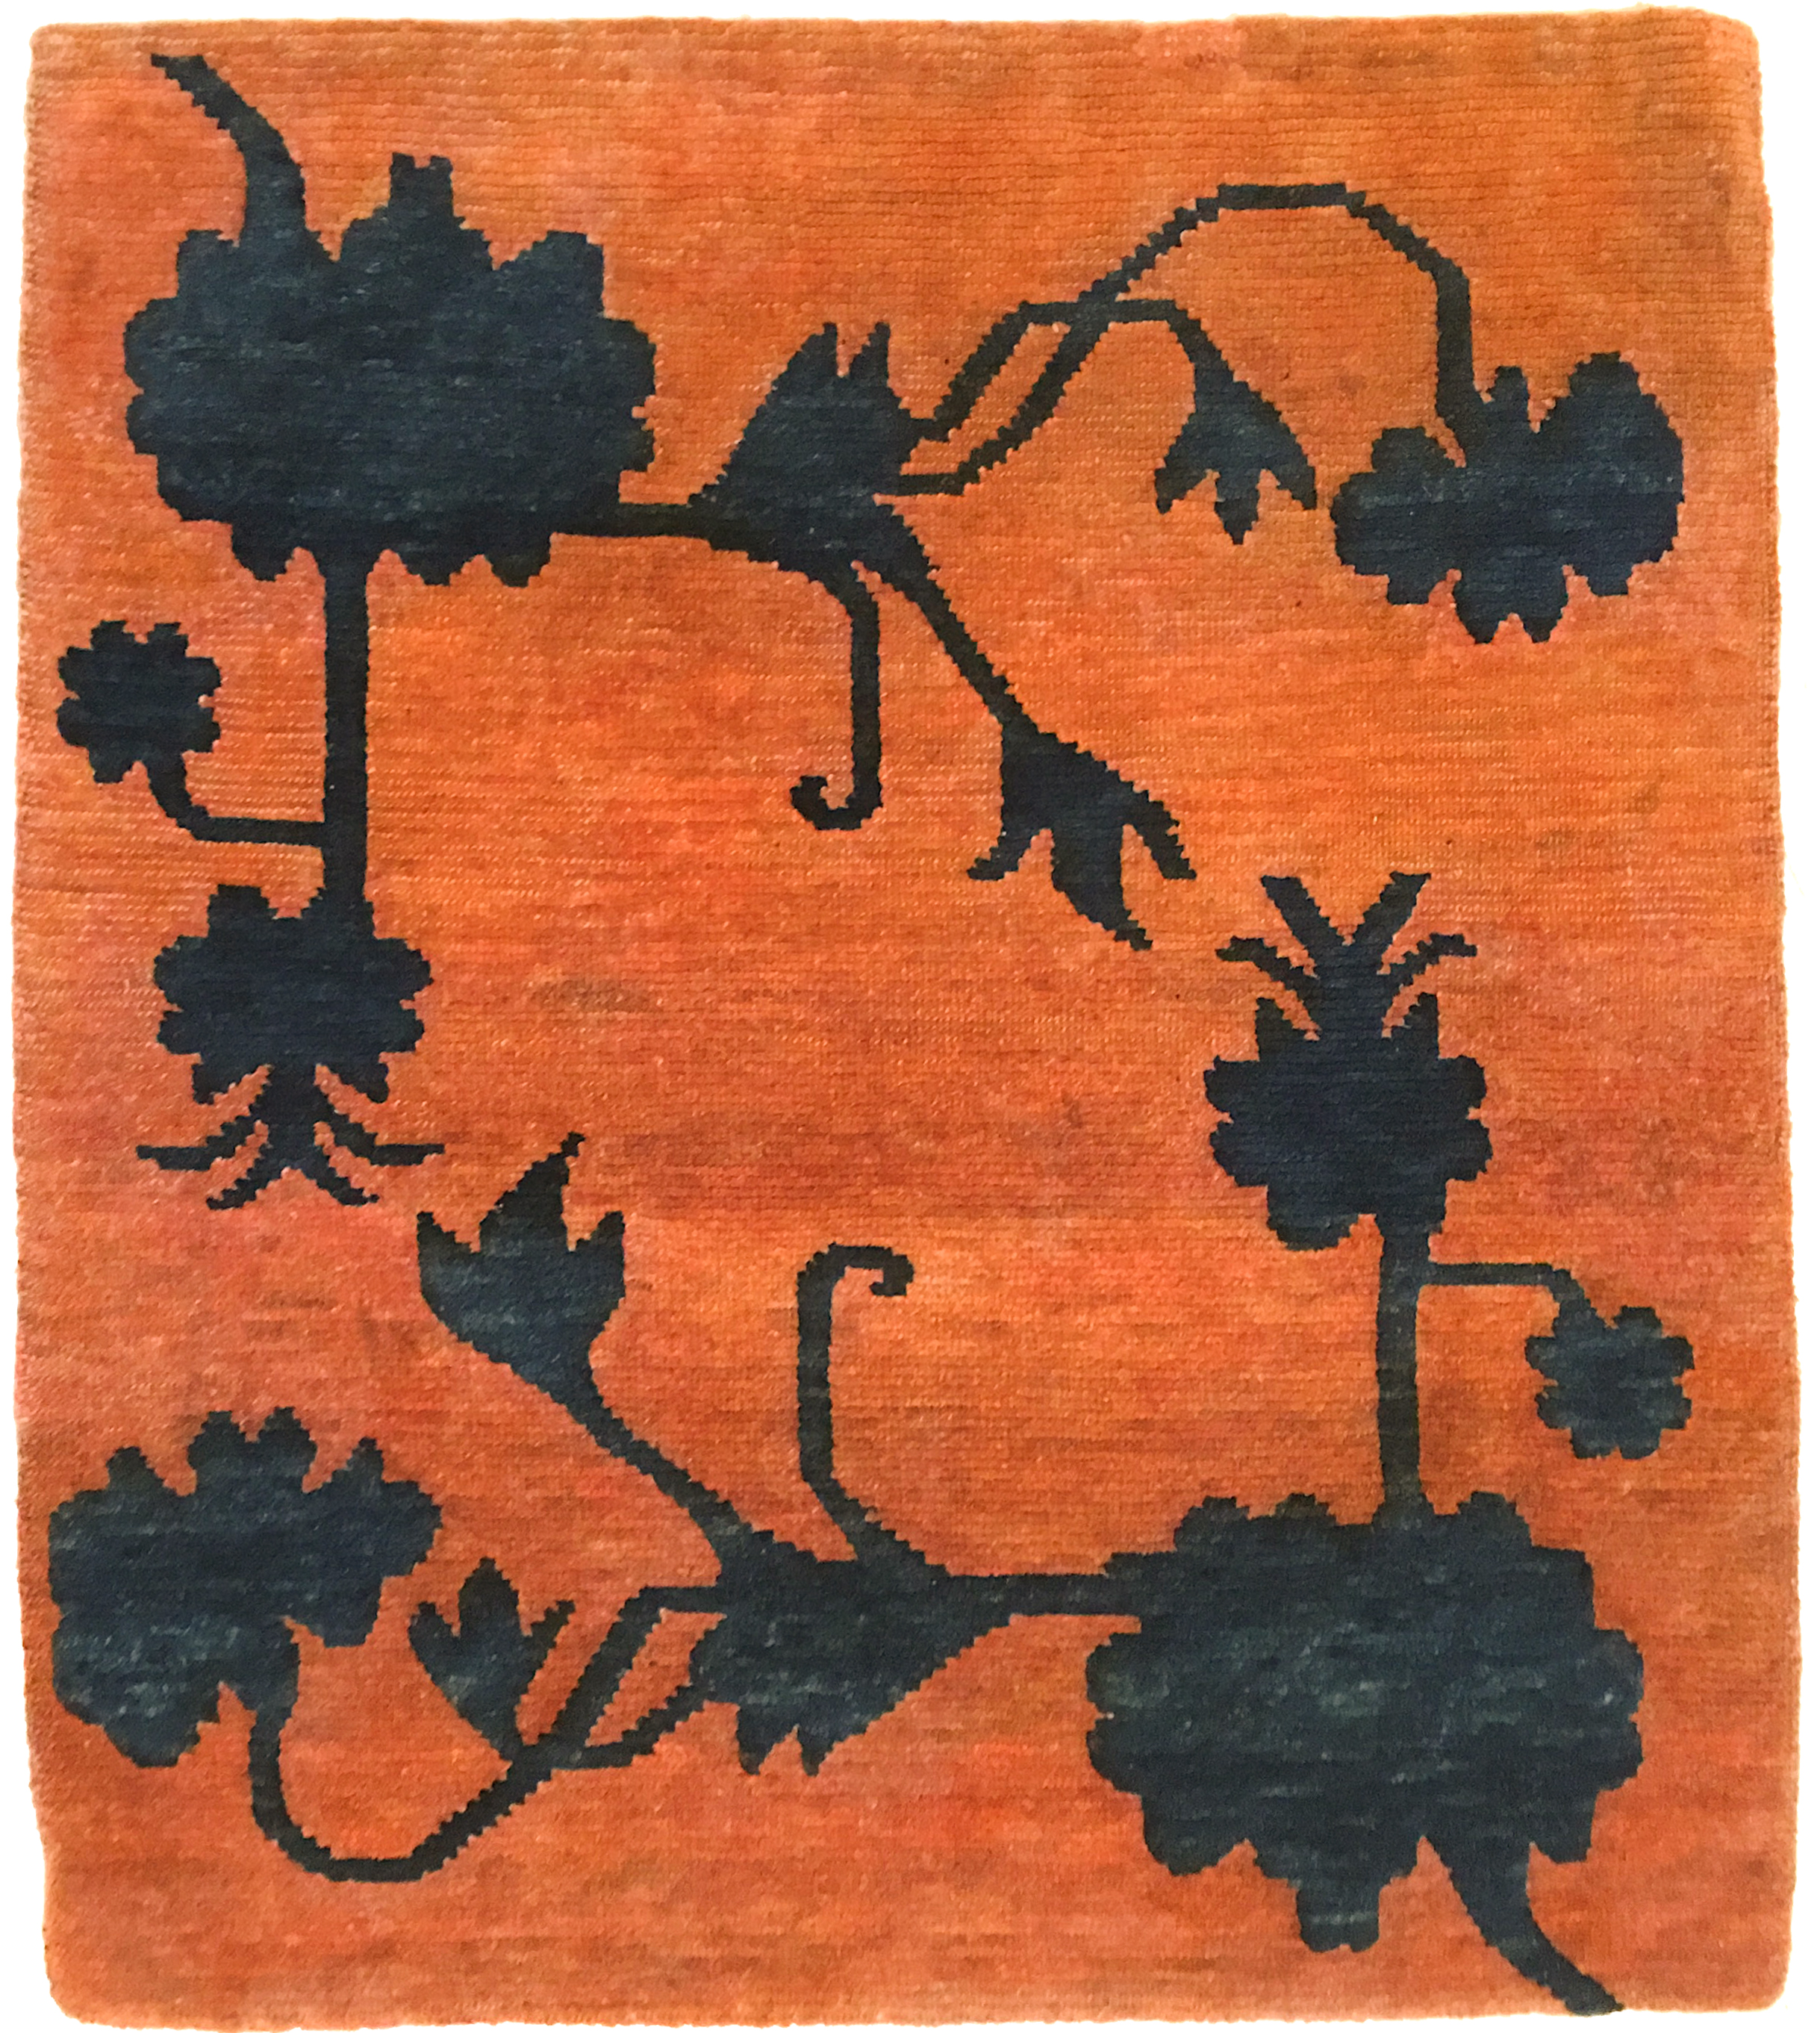 Rug with lotus flowers in relief (buma rimo 'cut like a mountain')